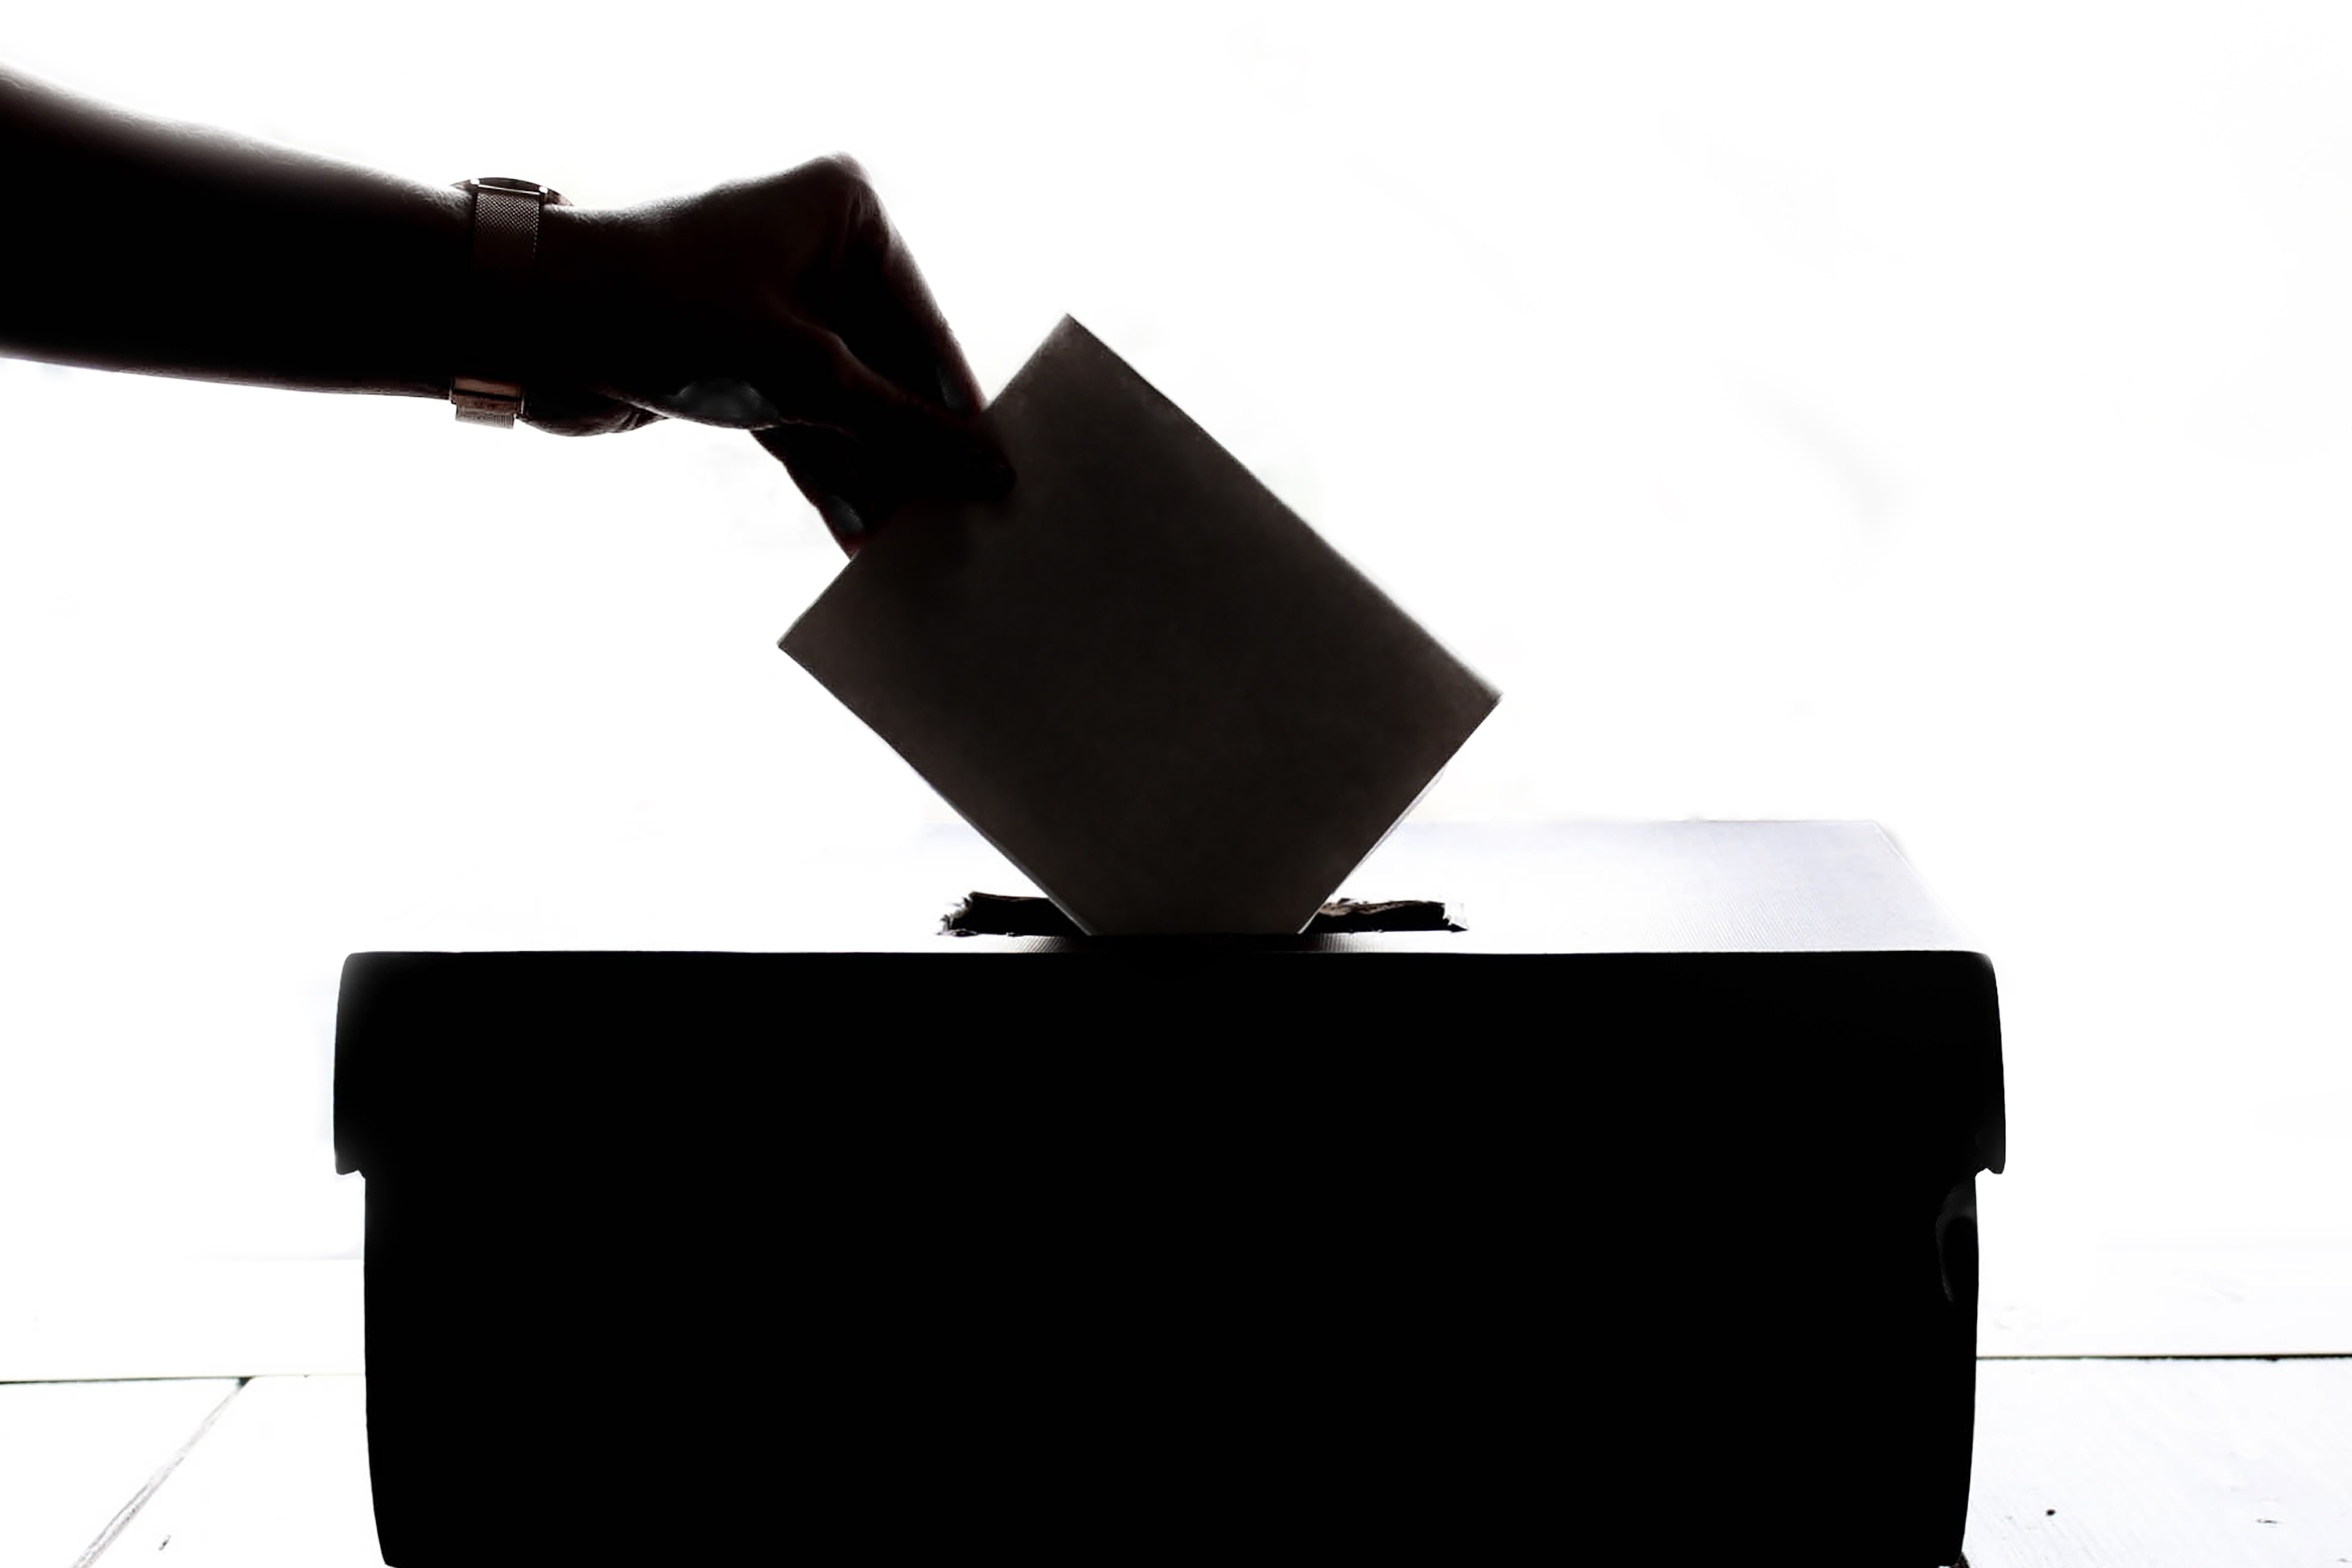 Silhouette of Voter Casting a Ballot